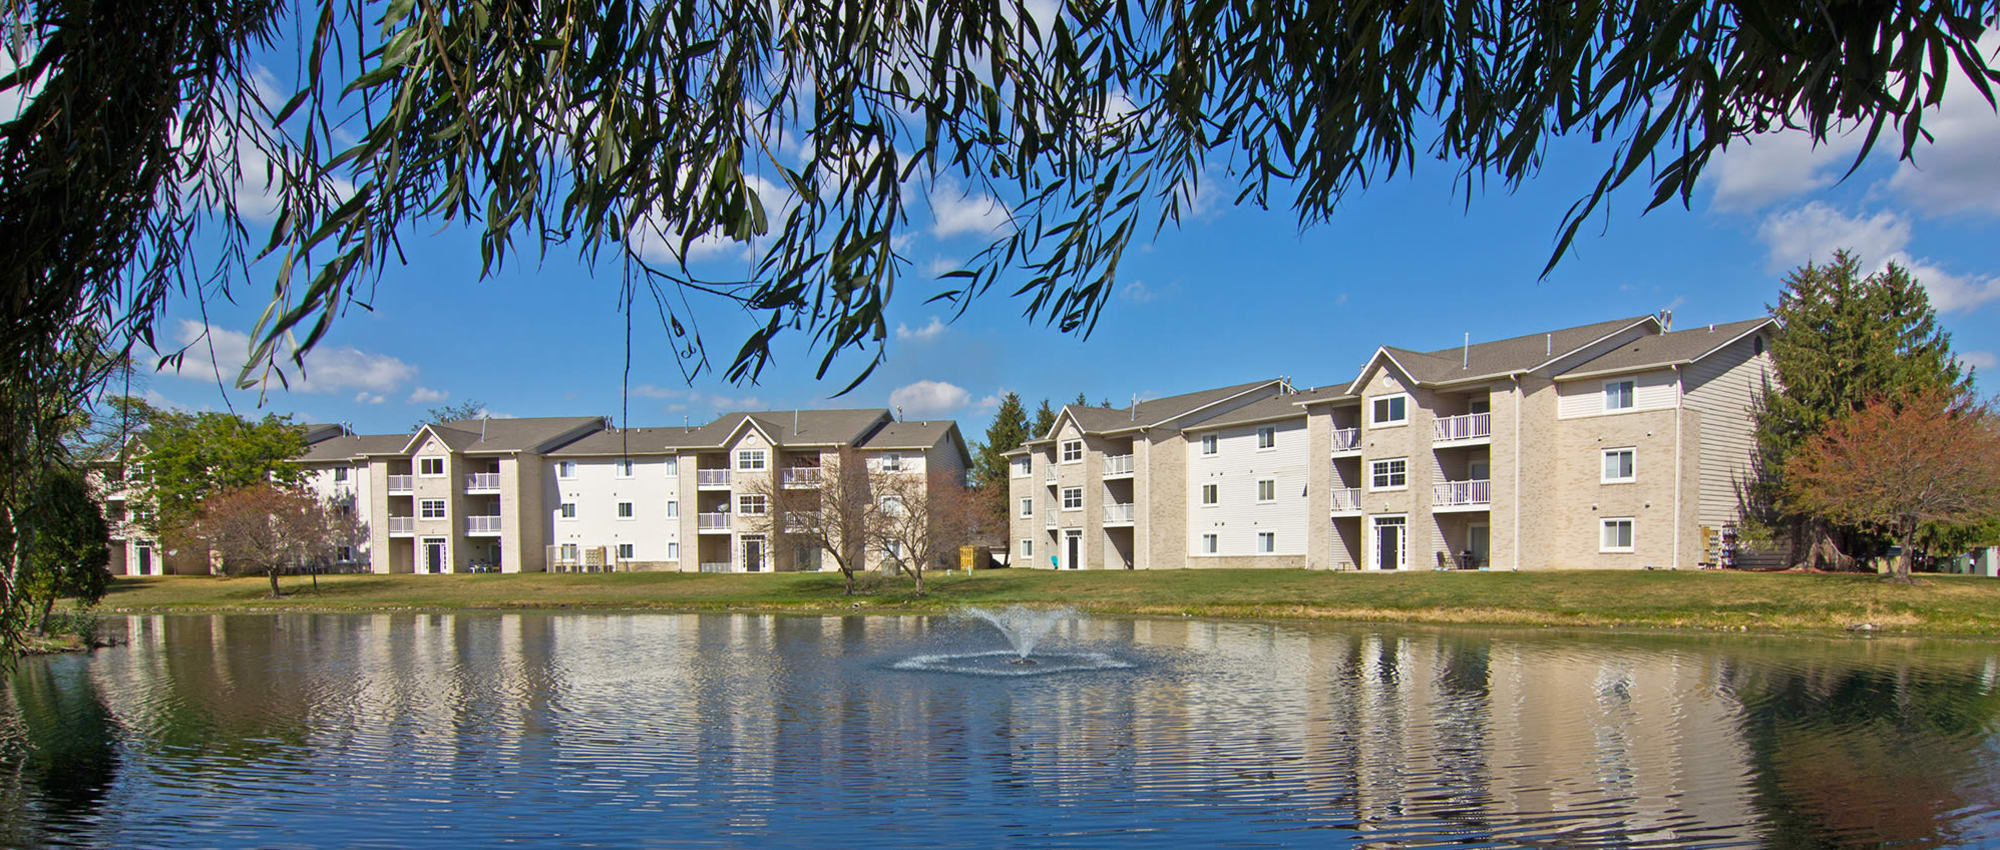 Apartments at The Lakes at 8201 in Merrillville, Indiana